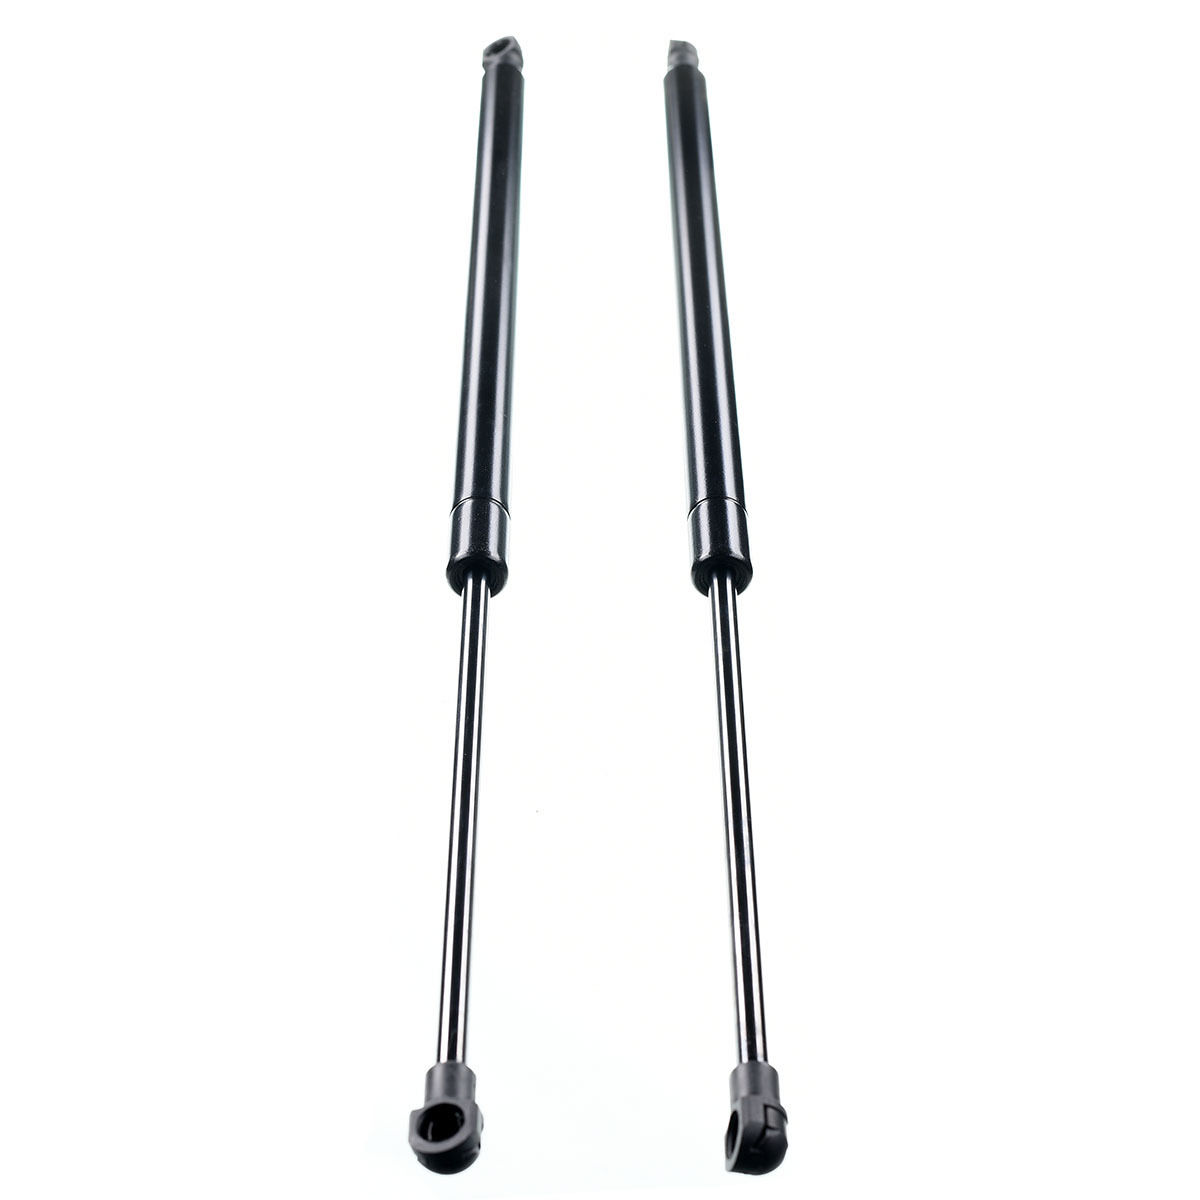 New 2pc Hood Lift Car Supports Shock Strut For Lexus Gs300